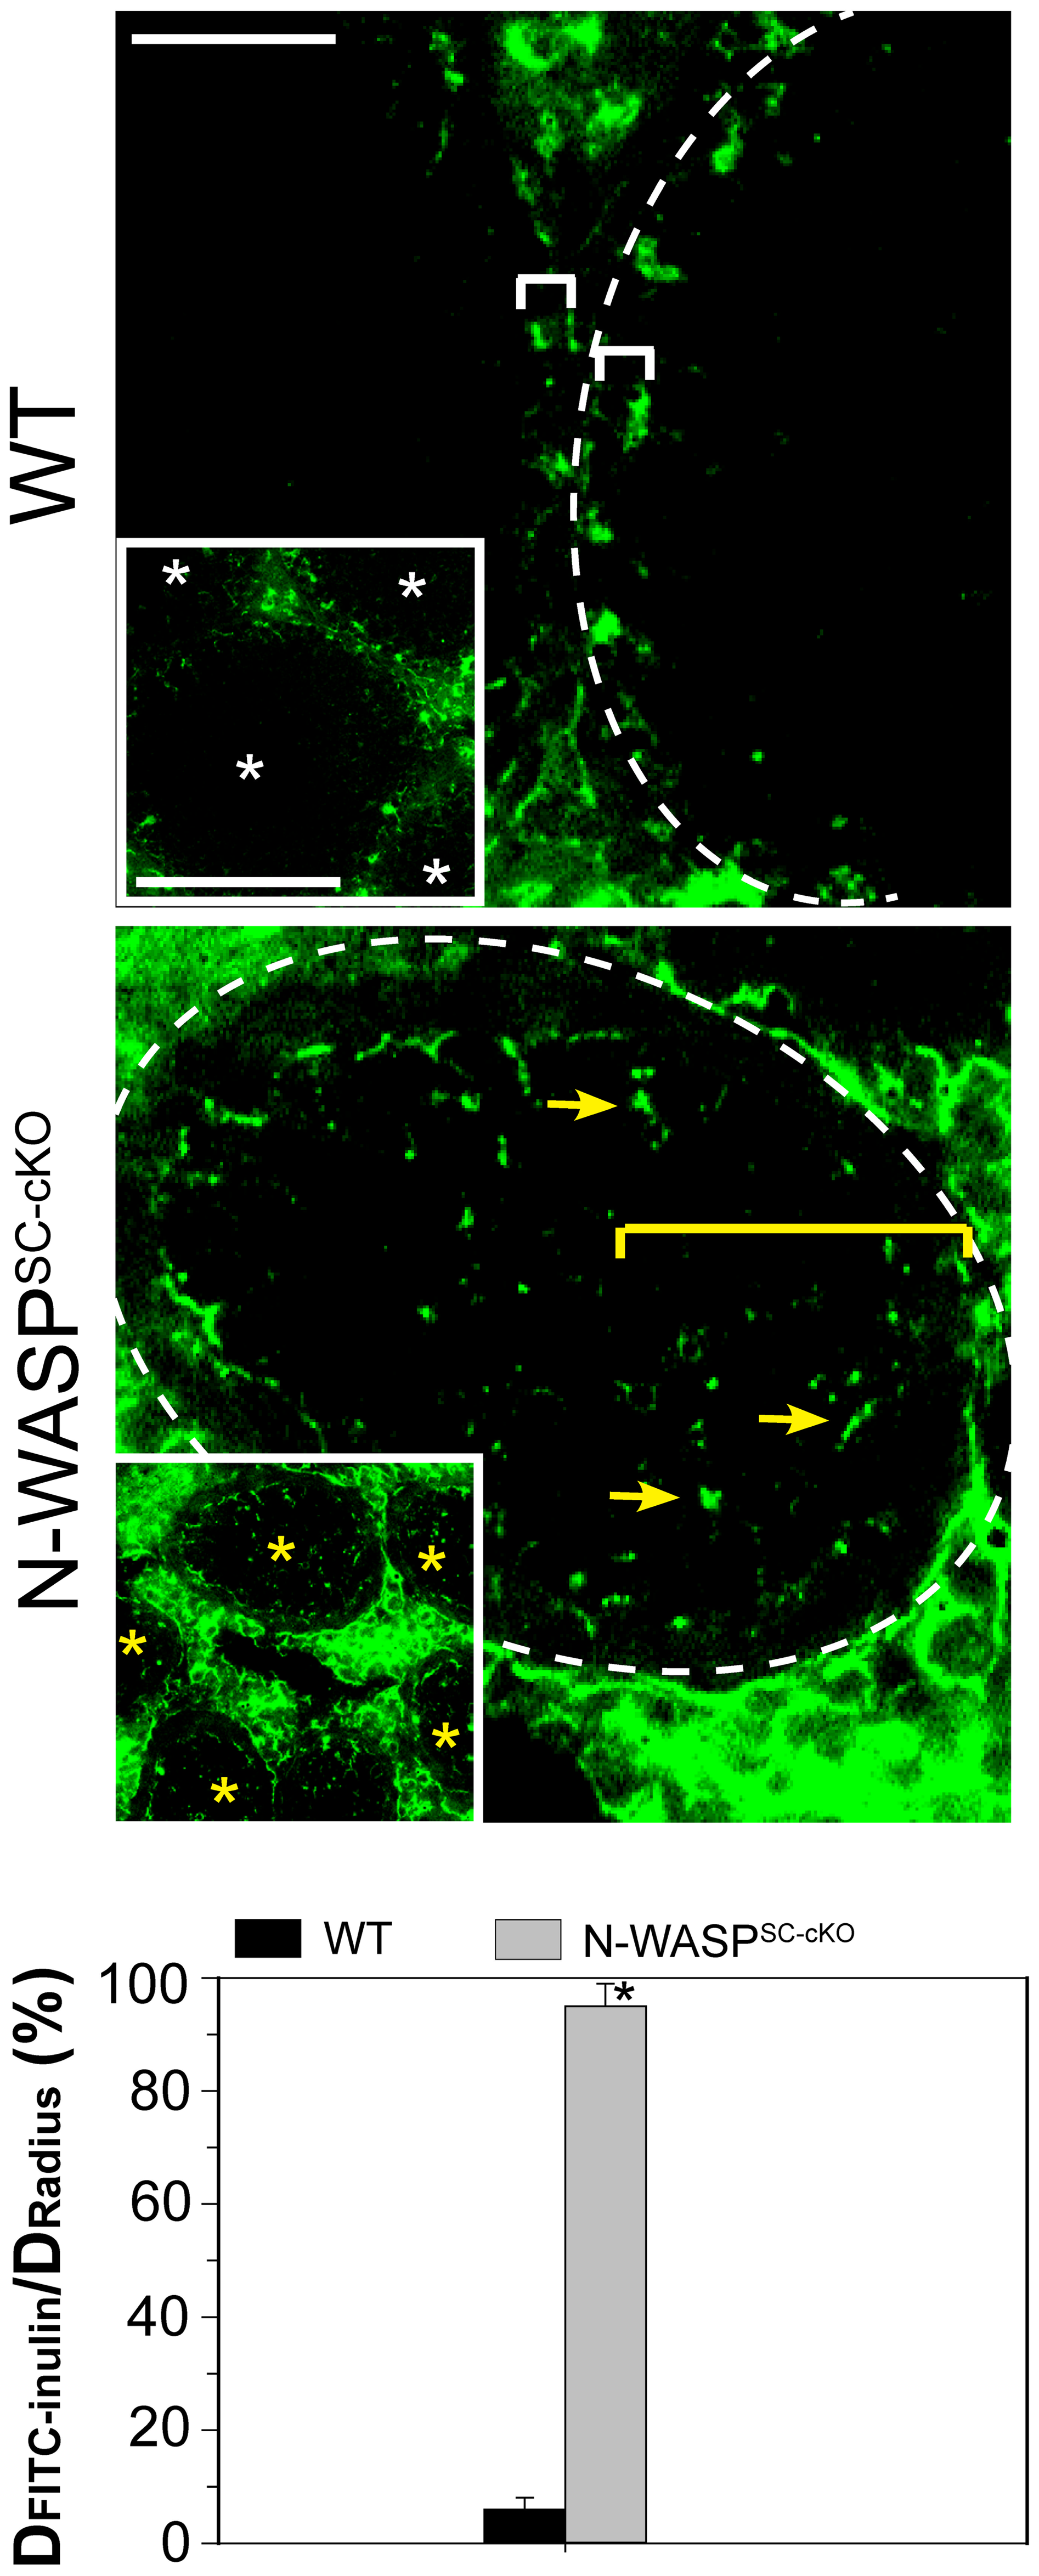 BTB integrity is compromised in testes of N-WASP<sup>SC-cKO</sup> mice.